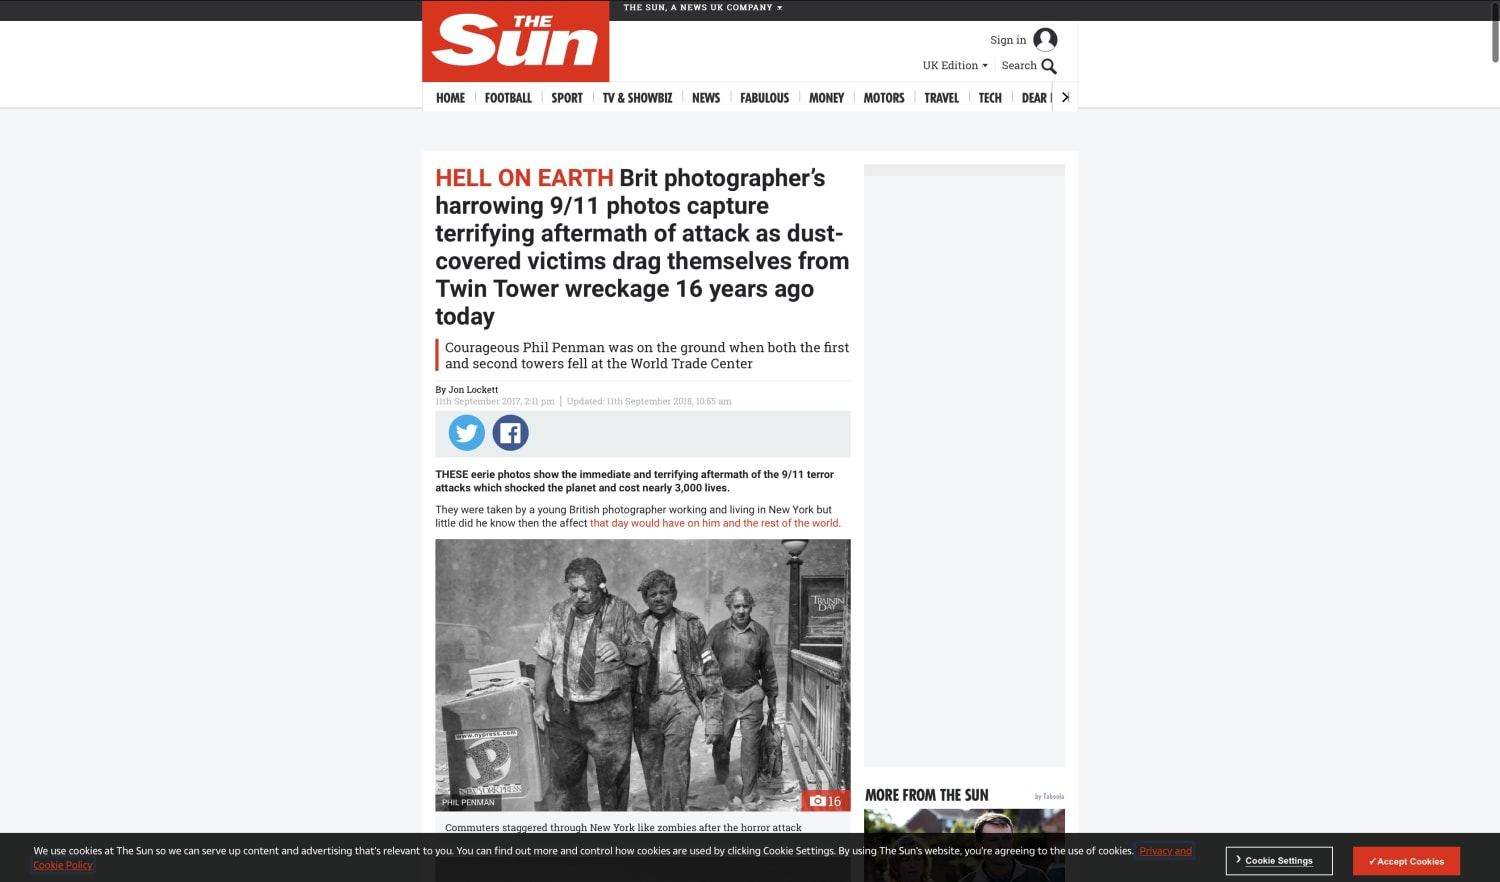 THE SUN: BRITS HARROWING 9/11 PICTURES